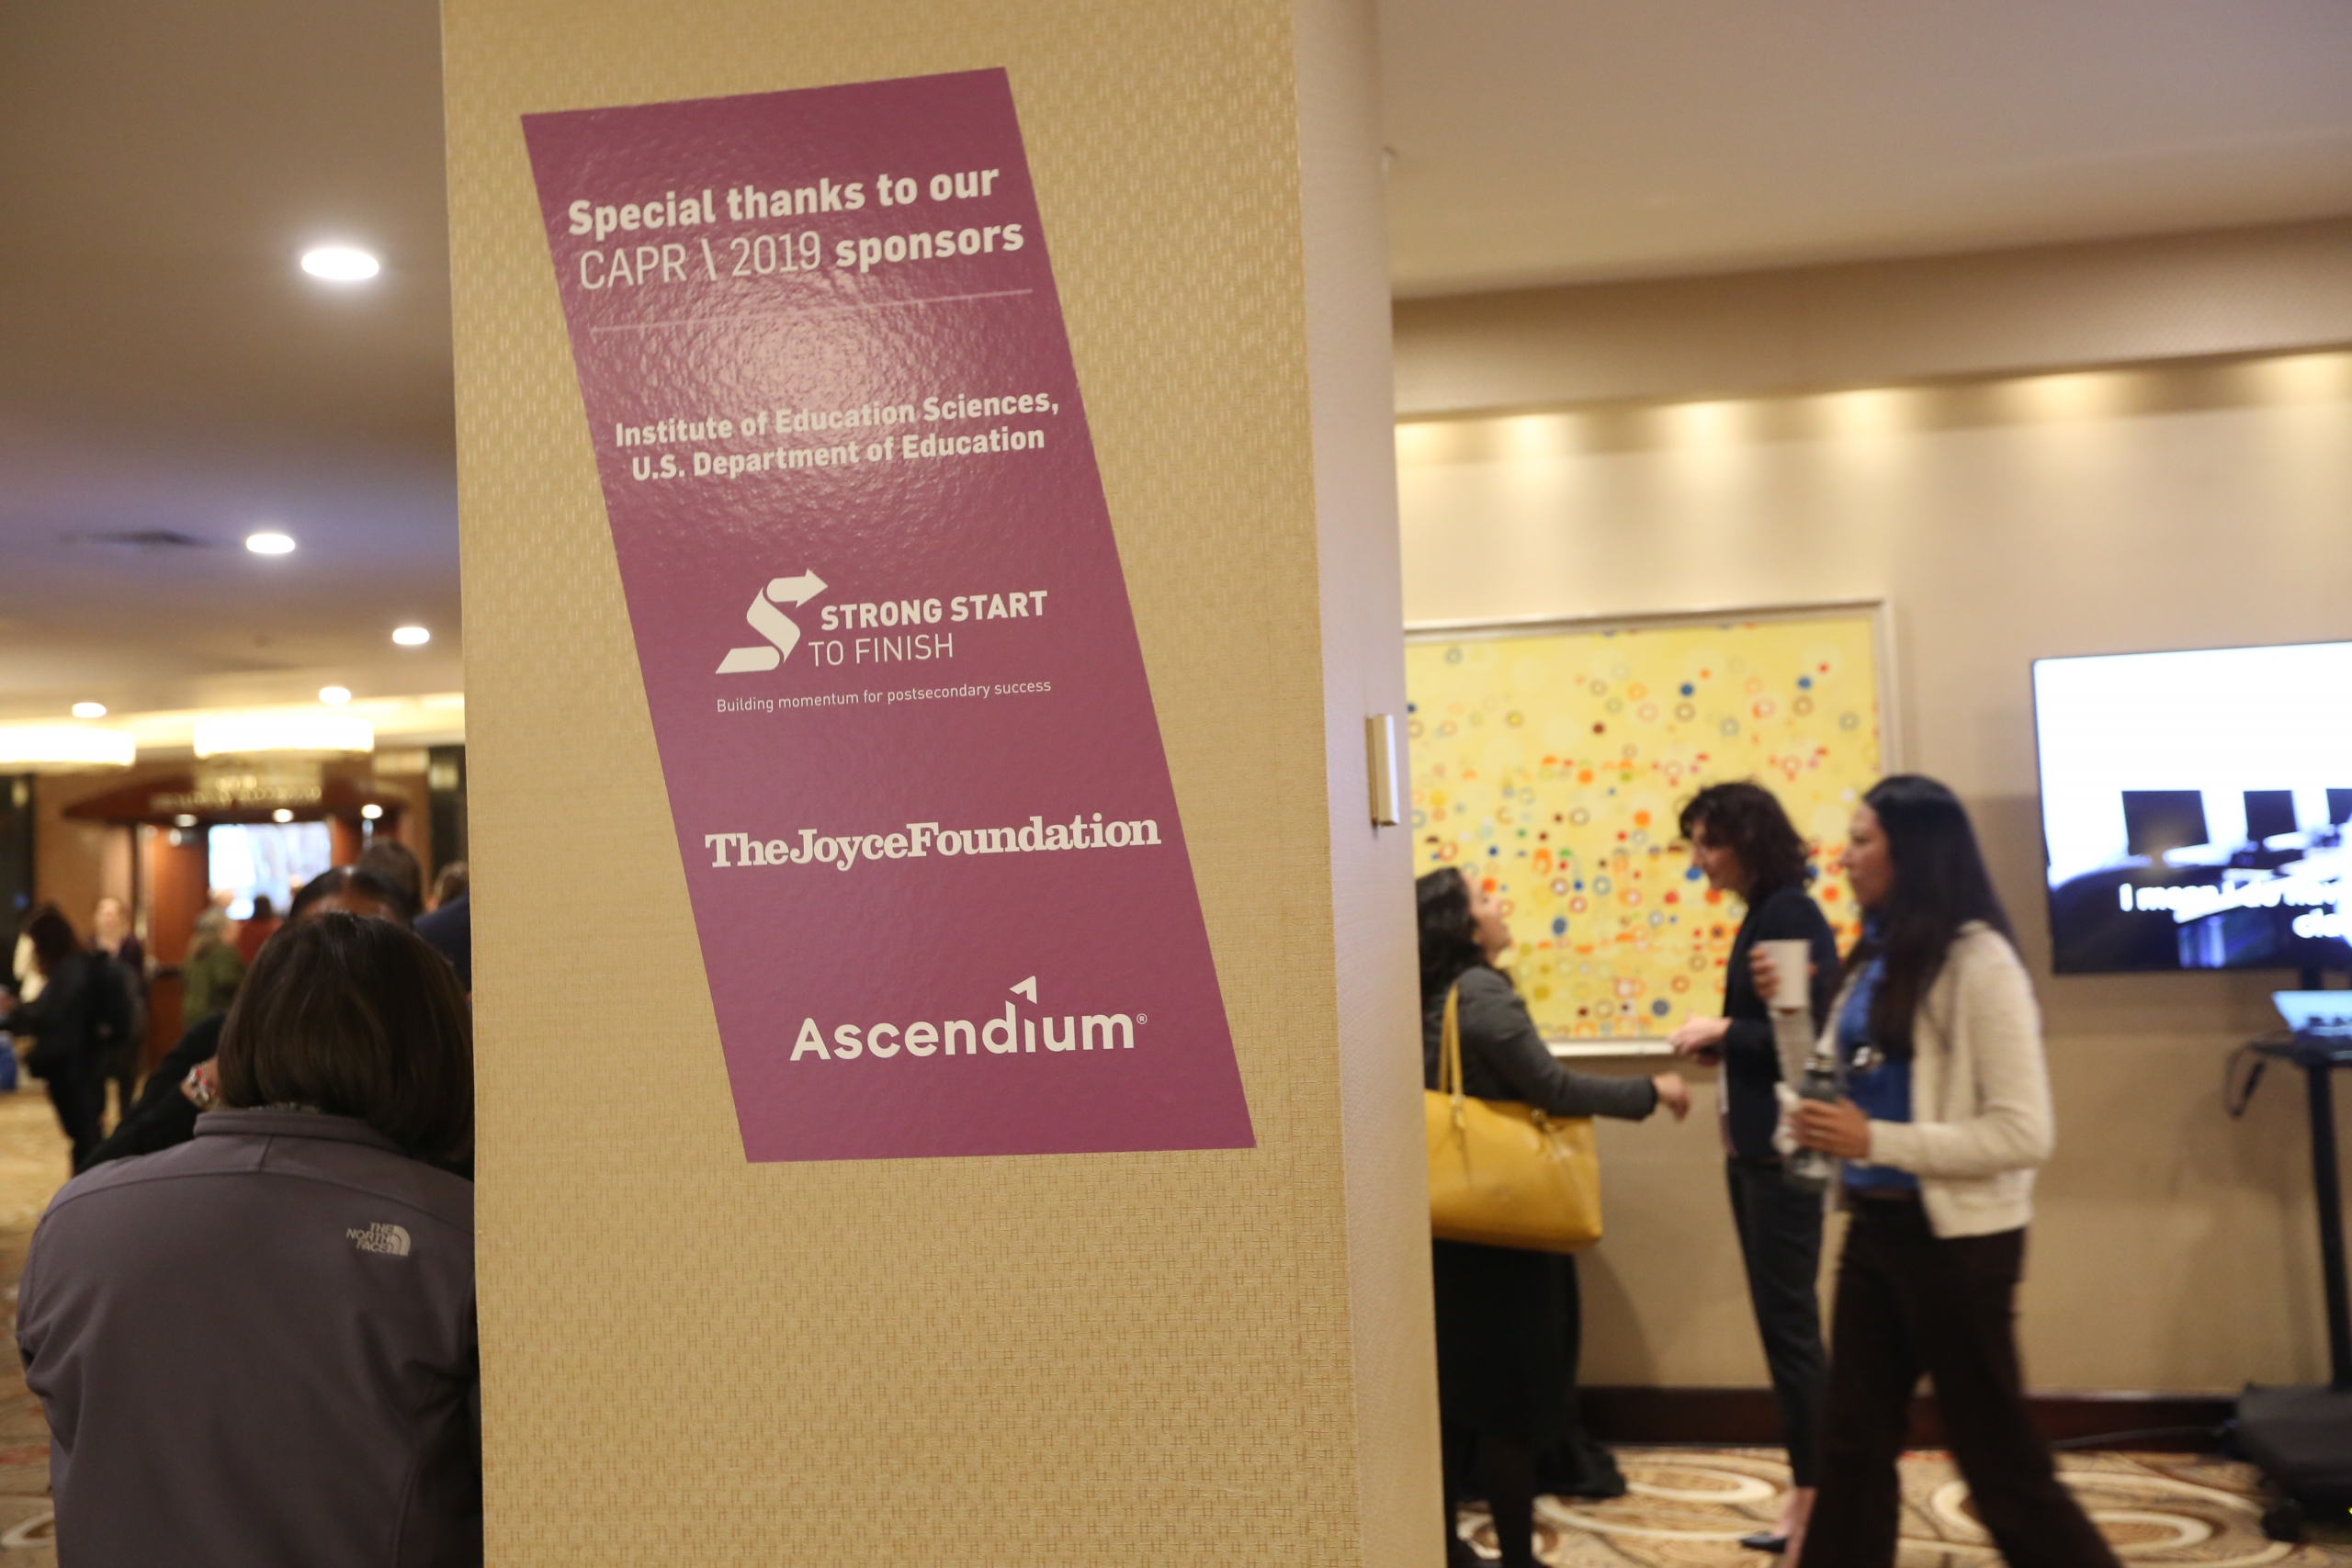 A CAPR banner in the hotel lobby